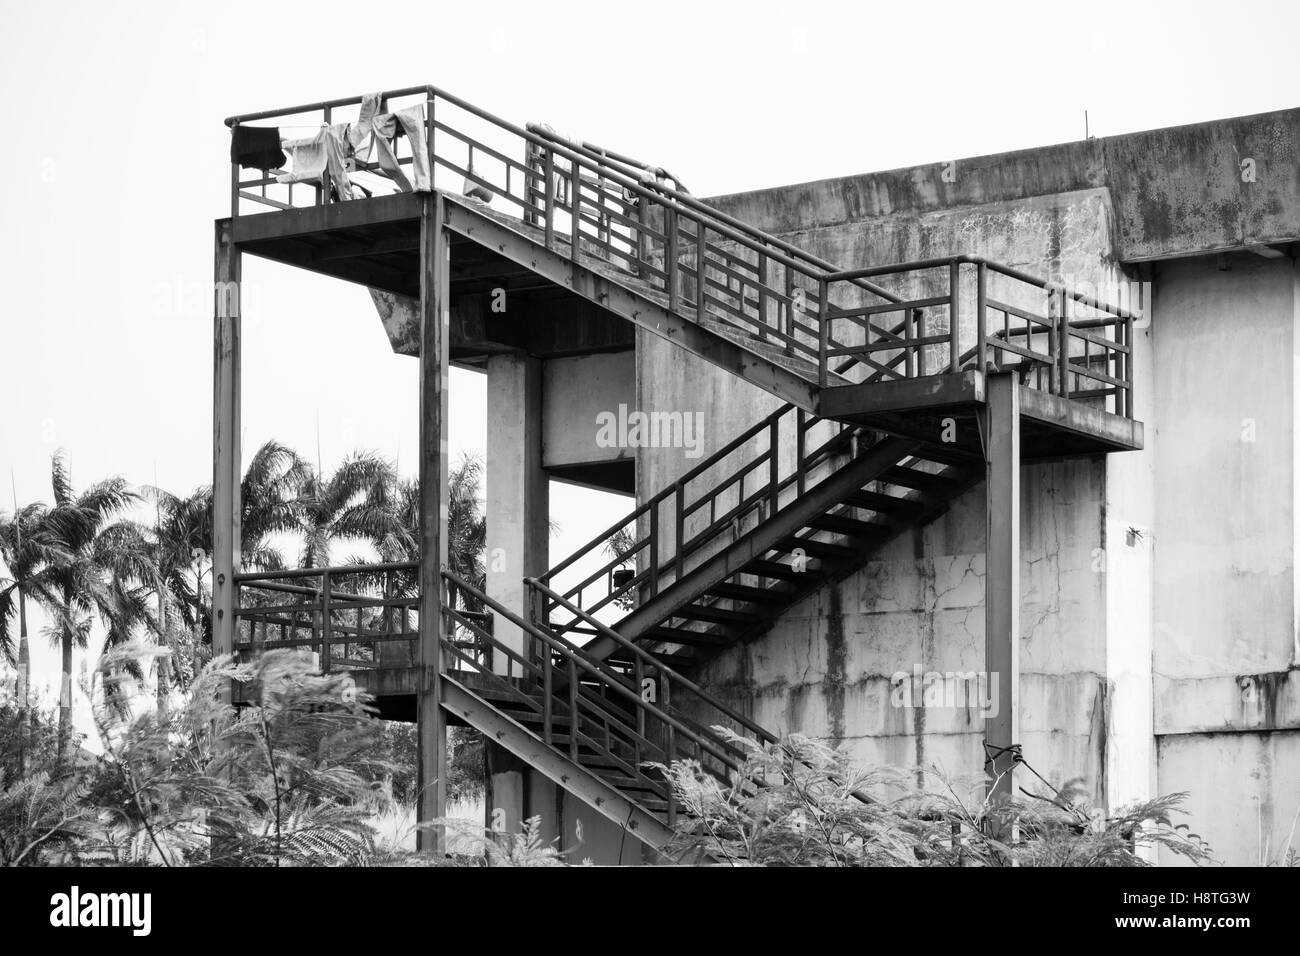 Metal Staircase Construction Which Made From Steel Platform Beside Of An  Abandoned Building. Black And White Photography.